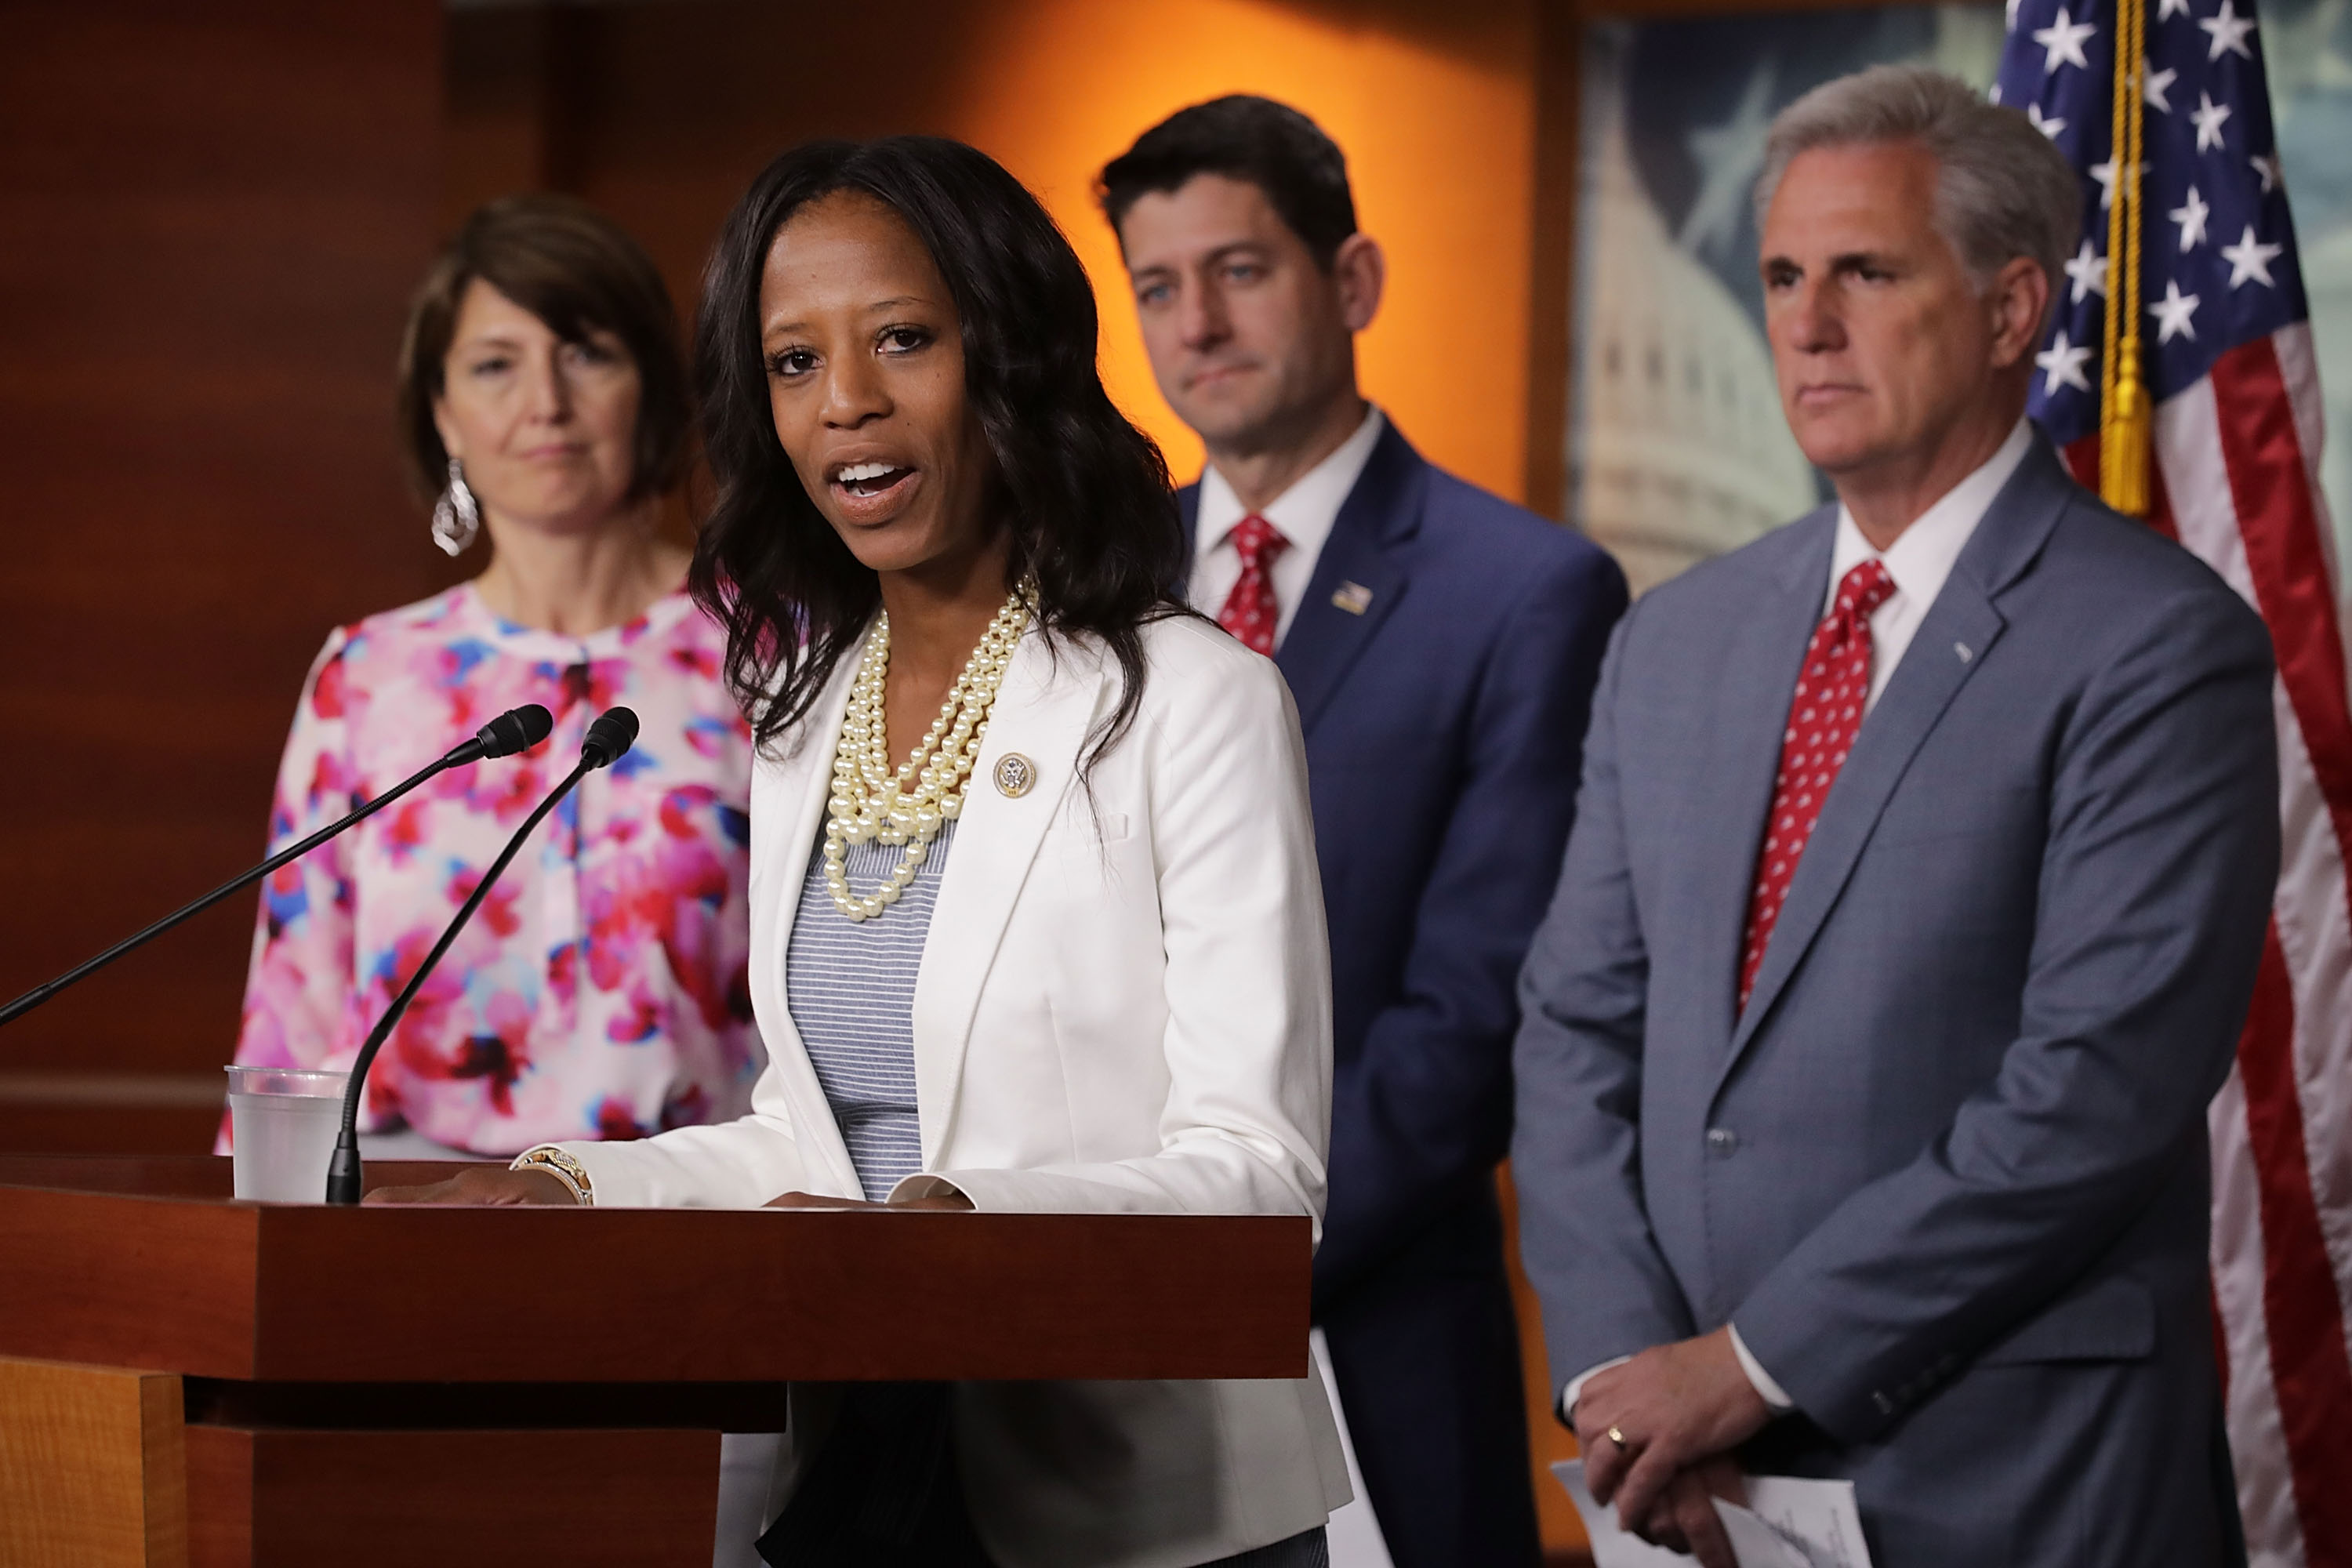 Rep. Mia Love (R-UT) speaks during a news conference with (L-R) Rep. Cathy McMorris Rodgers (R-WA), Speaker of the House Paul Ryan (R-WI) and Majority Leader Kevin McCarthy (R-CA) following their weekly caucus meeting at the U.S. Capitol Visitors Center July 17, 2018 in Washington, DC. Chip Somodevilla/Getty Images